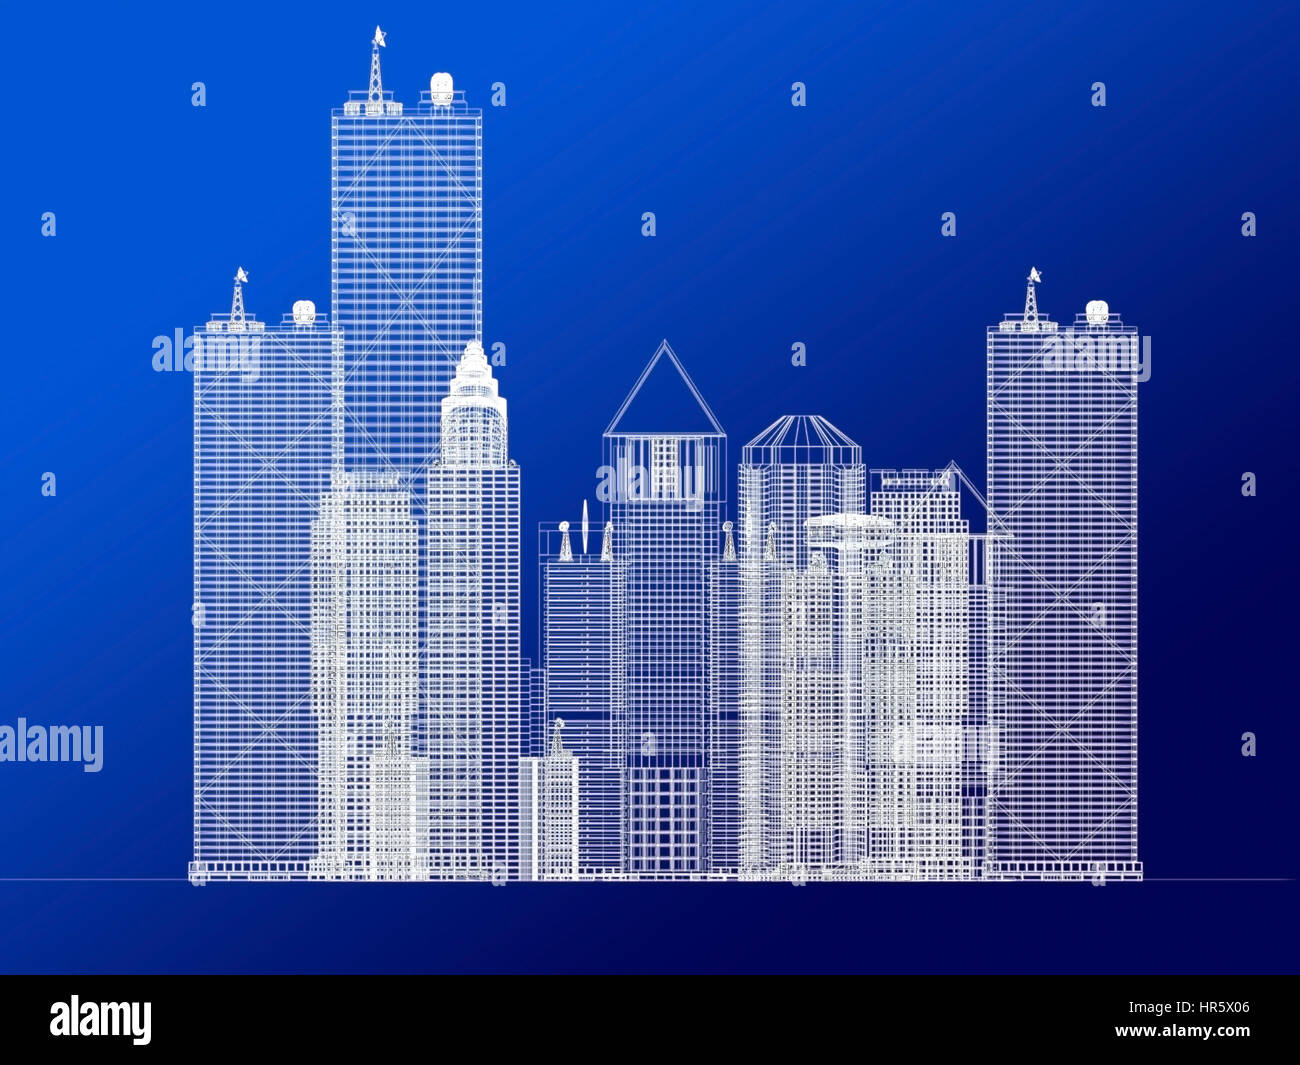 Architecture Blueprint Of Corporate Buildings Over A Blue Background